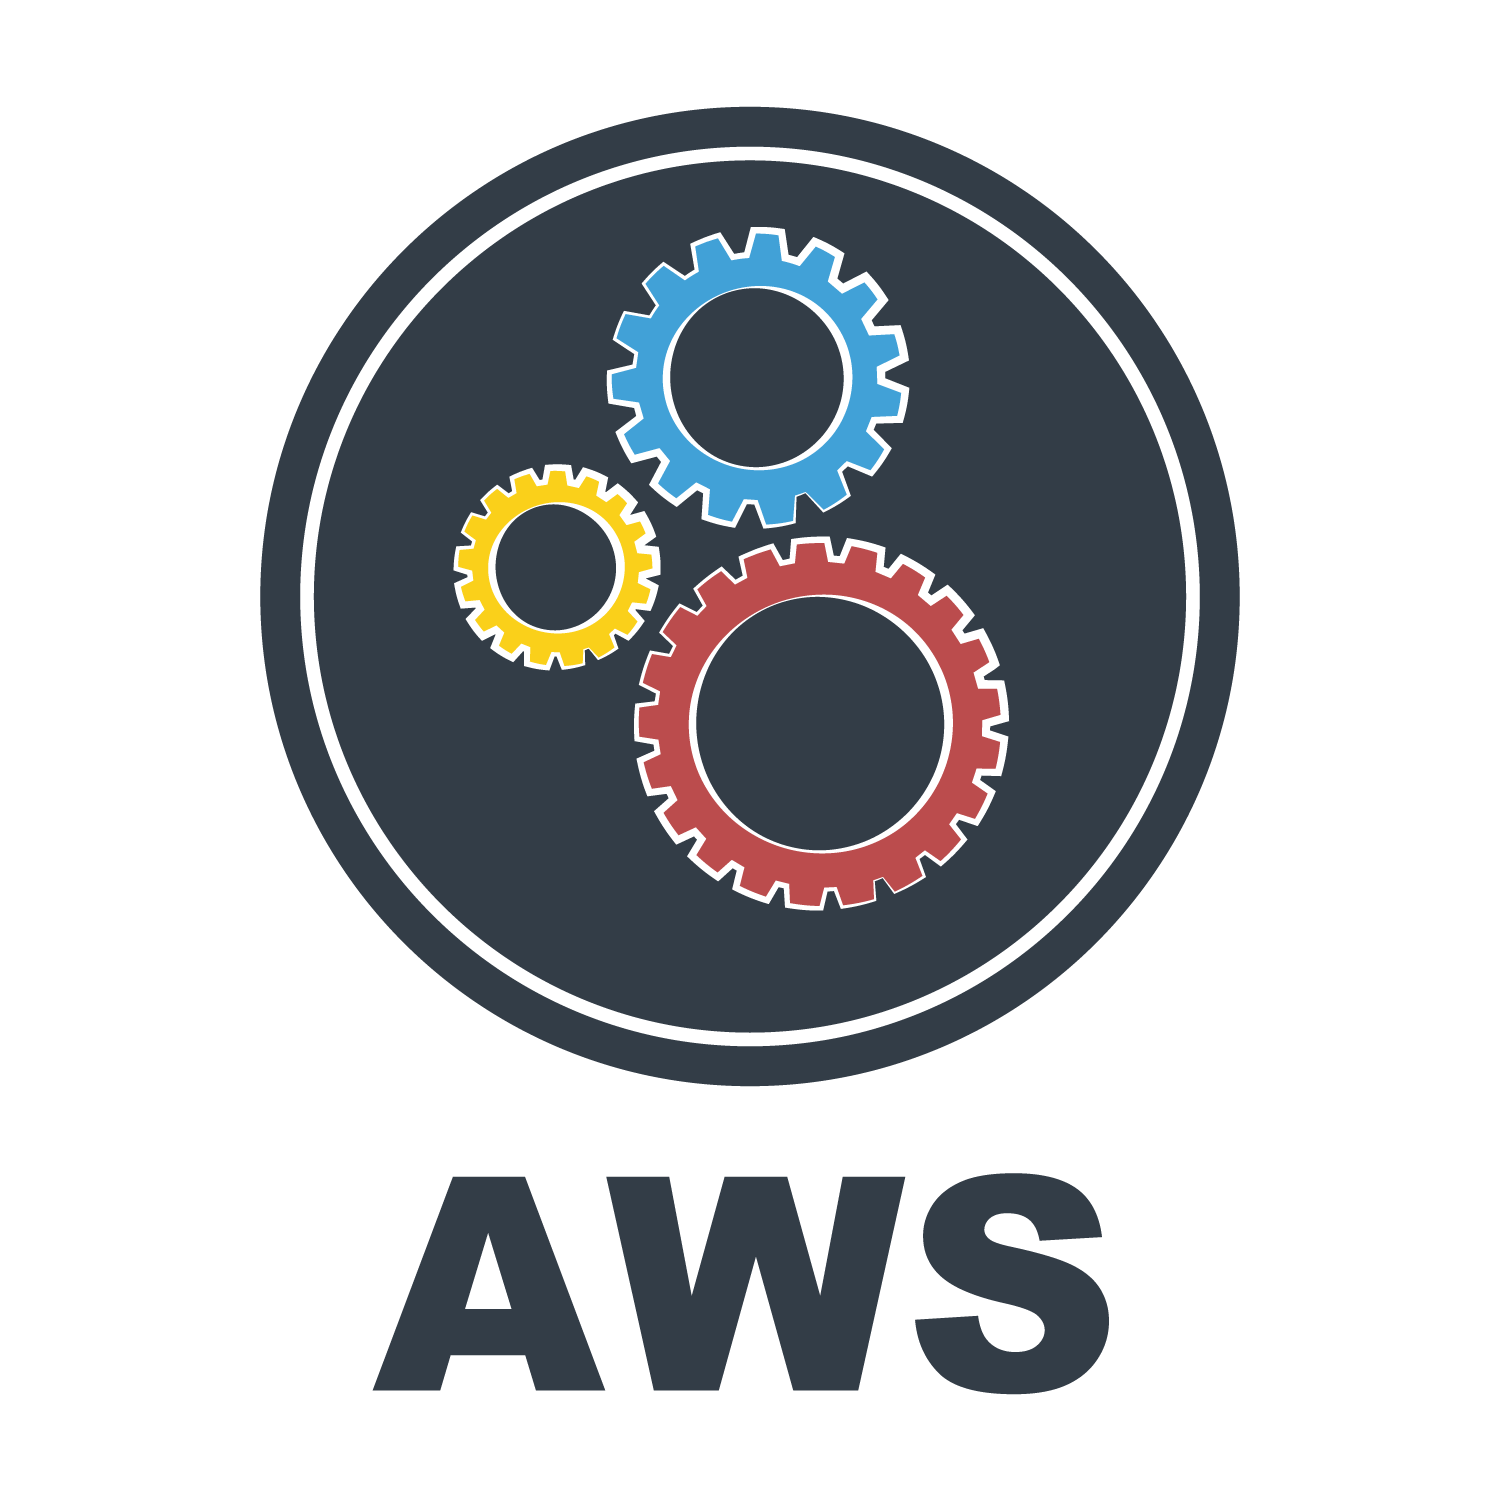 Areas of Worklife Survey (AWS) - Assessments, Tests   Mind